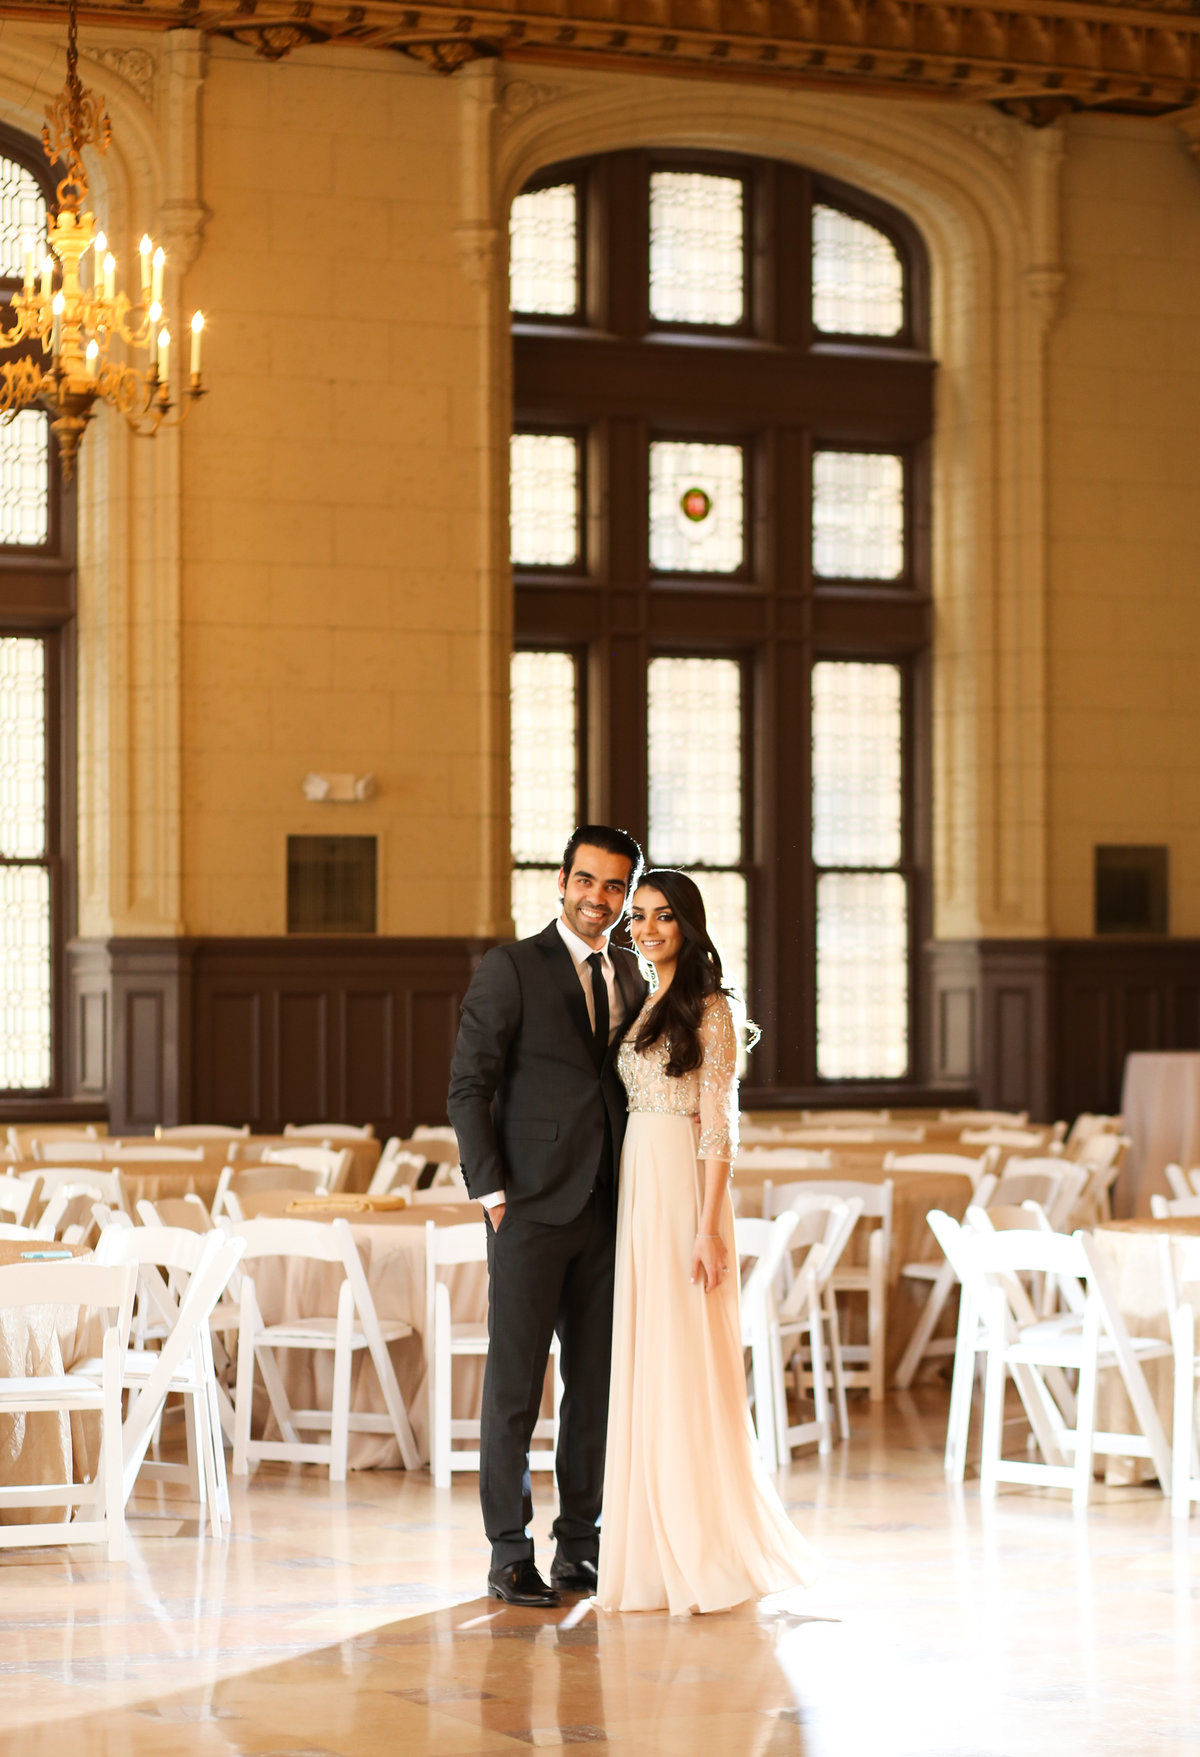 Wedding Venue Ideas Kansas City Overland Park Engagement